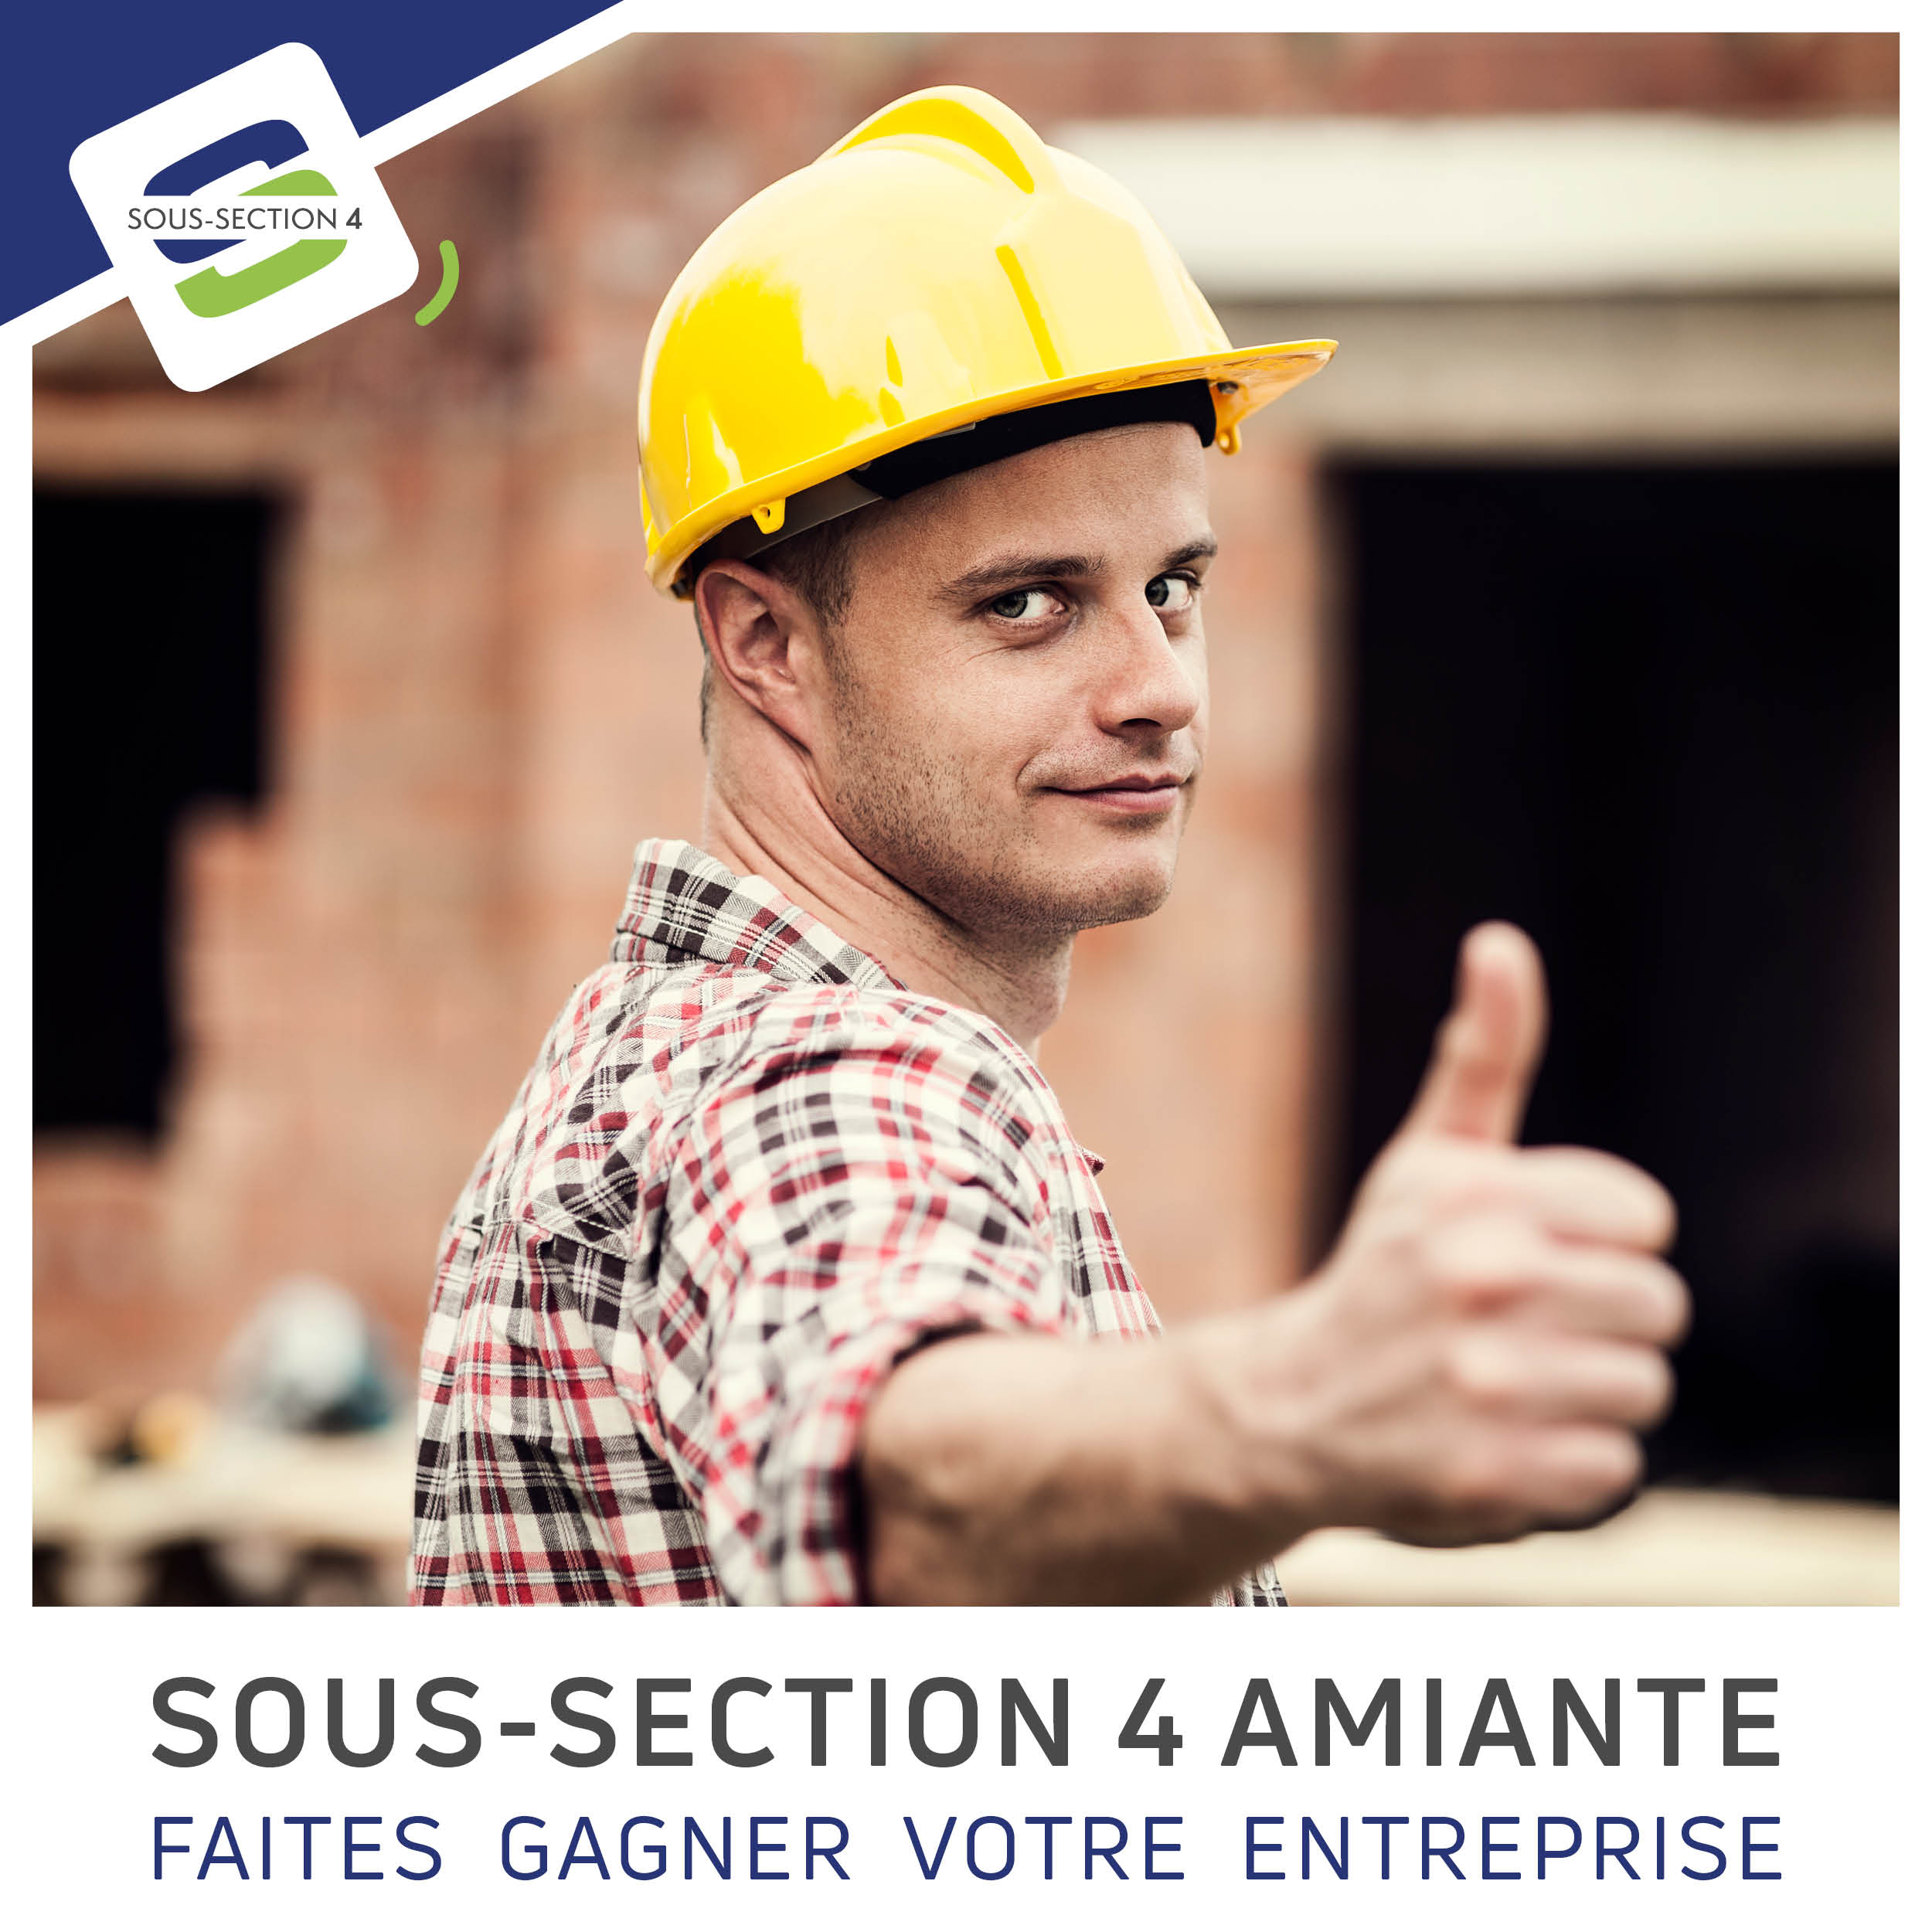 Formation amiante sous section 4 Ac Environnement